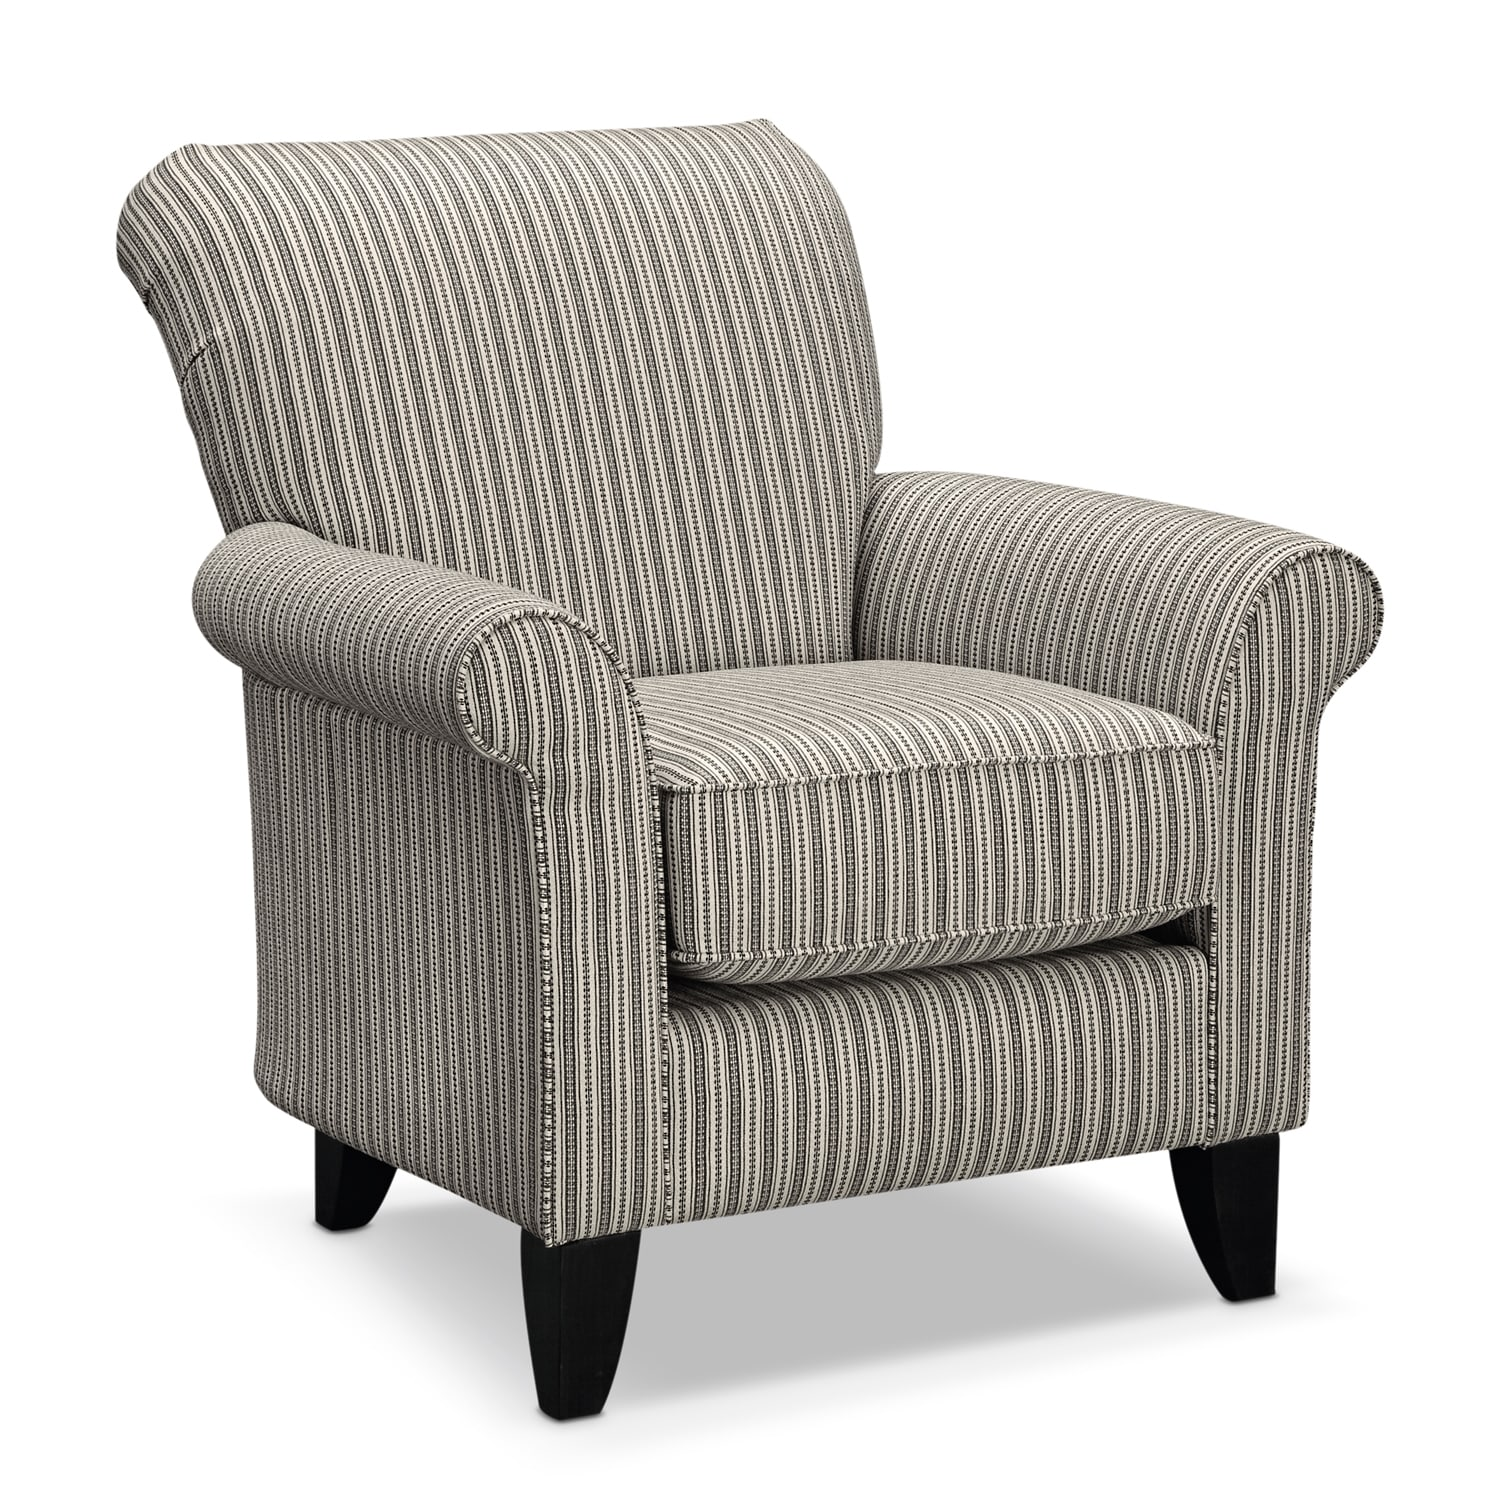 Colette accent chair gray stripe value city furniture for Chair living room